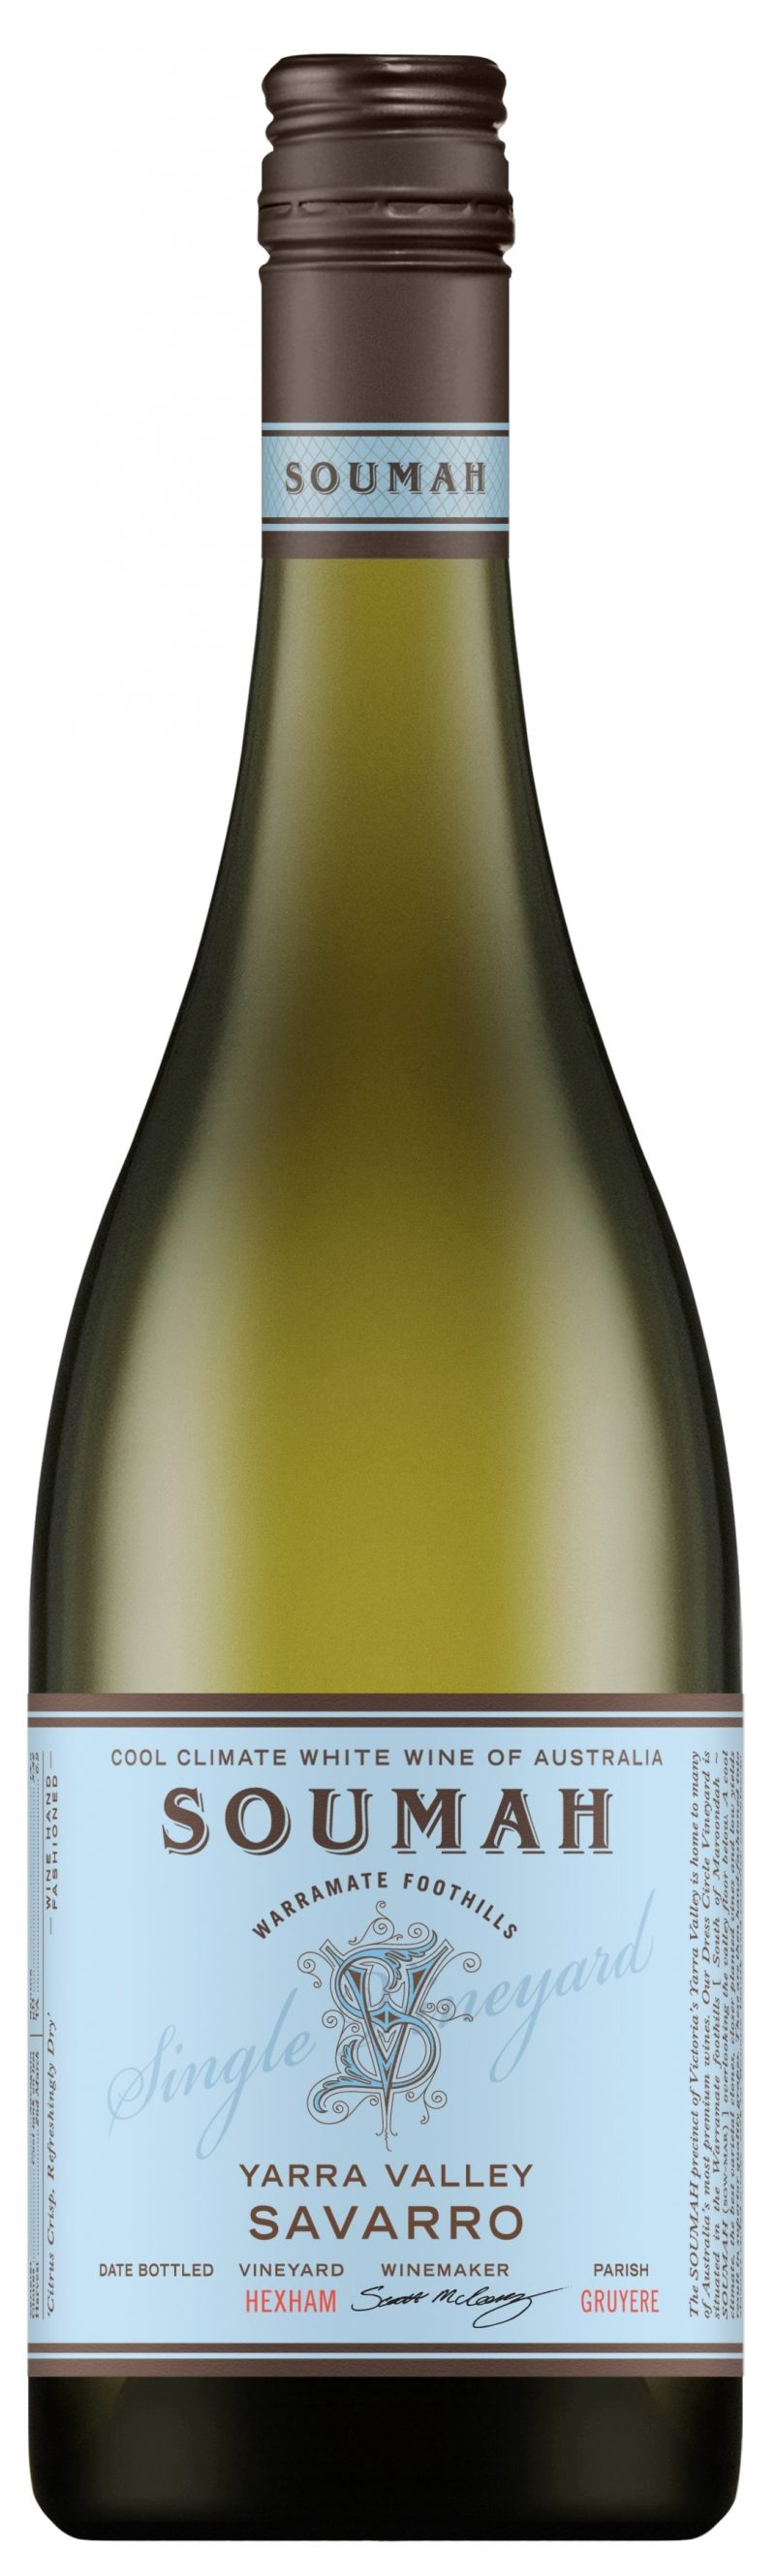 Soumah 'Hexam Vineyard' Savarro/Savagnin 2018-0